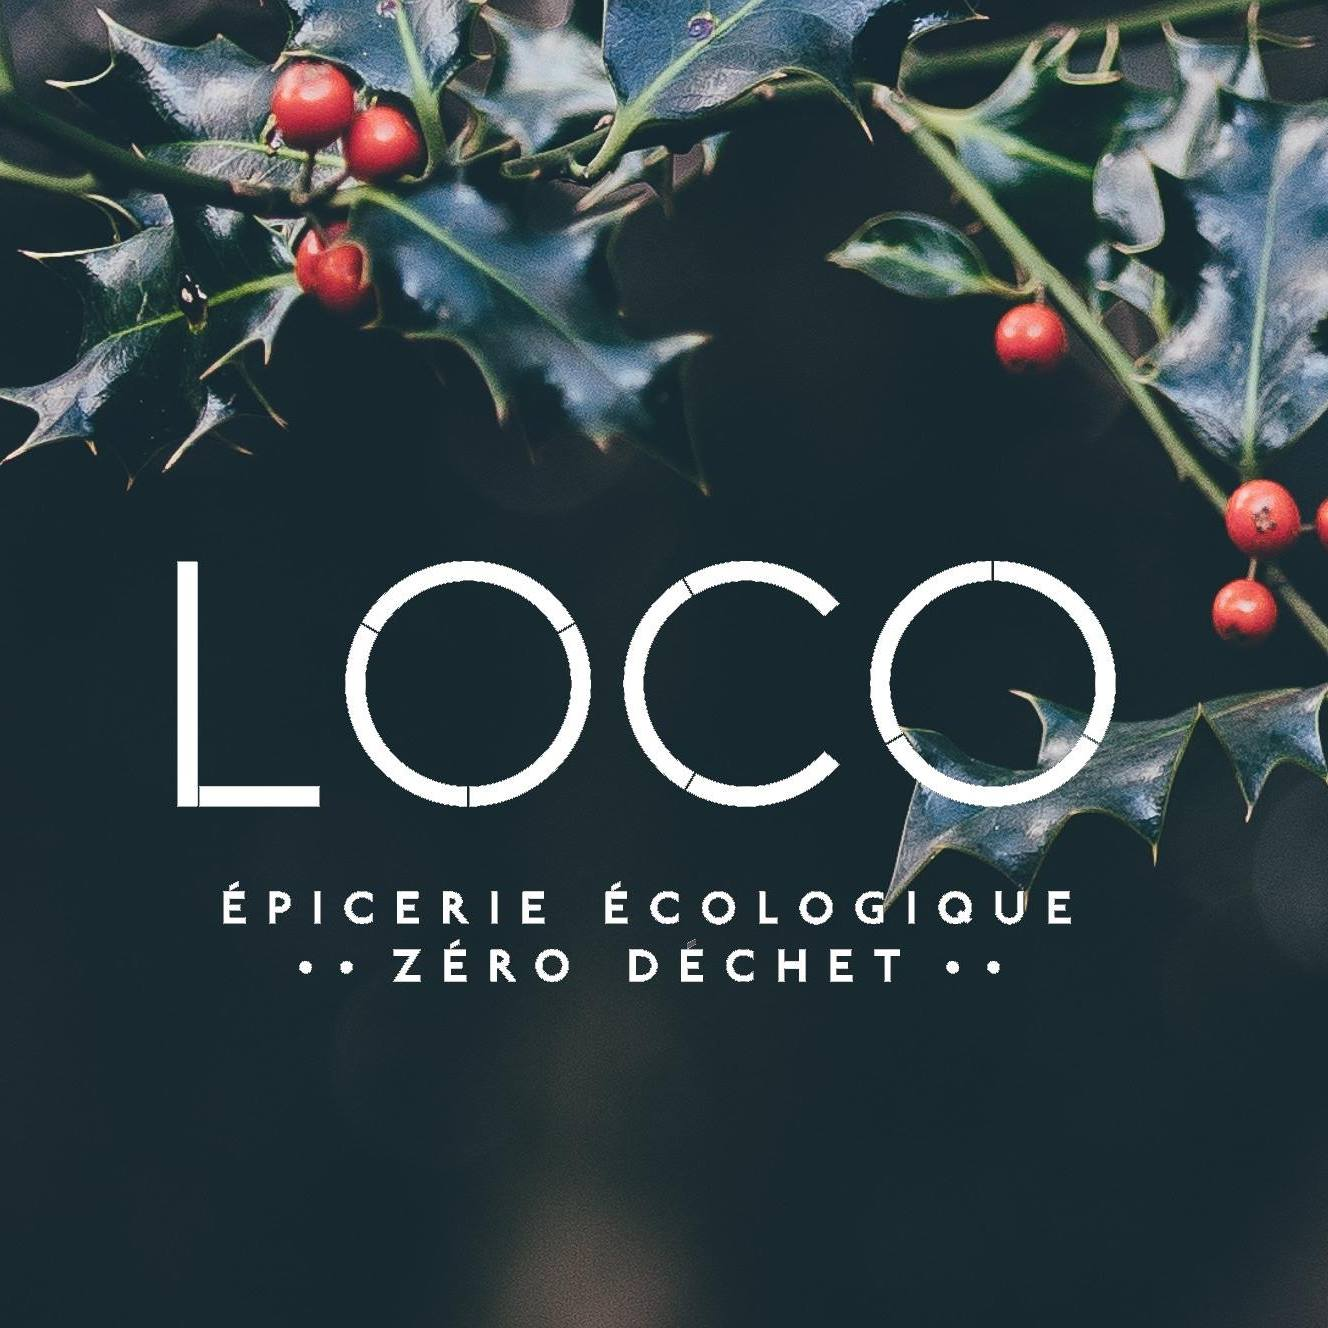 Grocery zero ecological waste Grocer LOCO Verdun Local Ulocal product local purchase